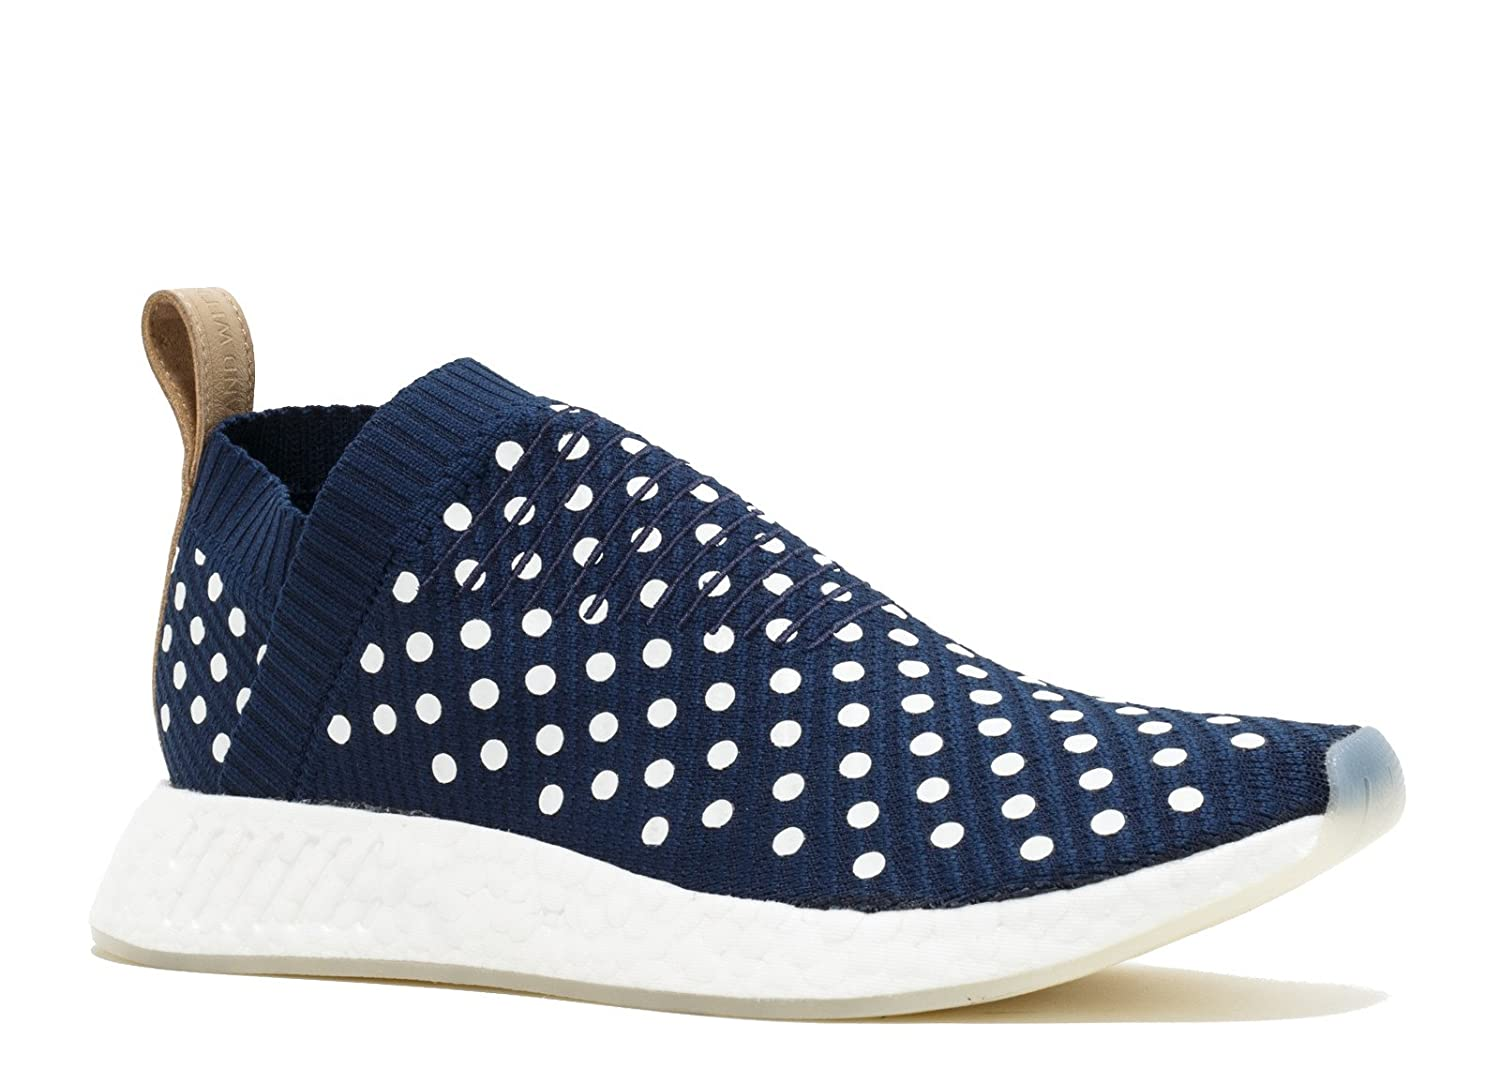 956fa44c Amazon.com | adidas NMD Cs2 Pk W 'Ronin Pack' - Ba7212 - Size 10 | Shoes